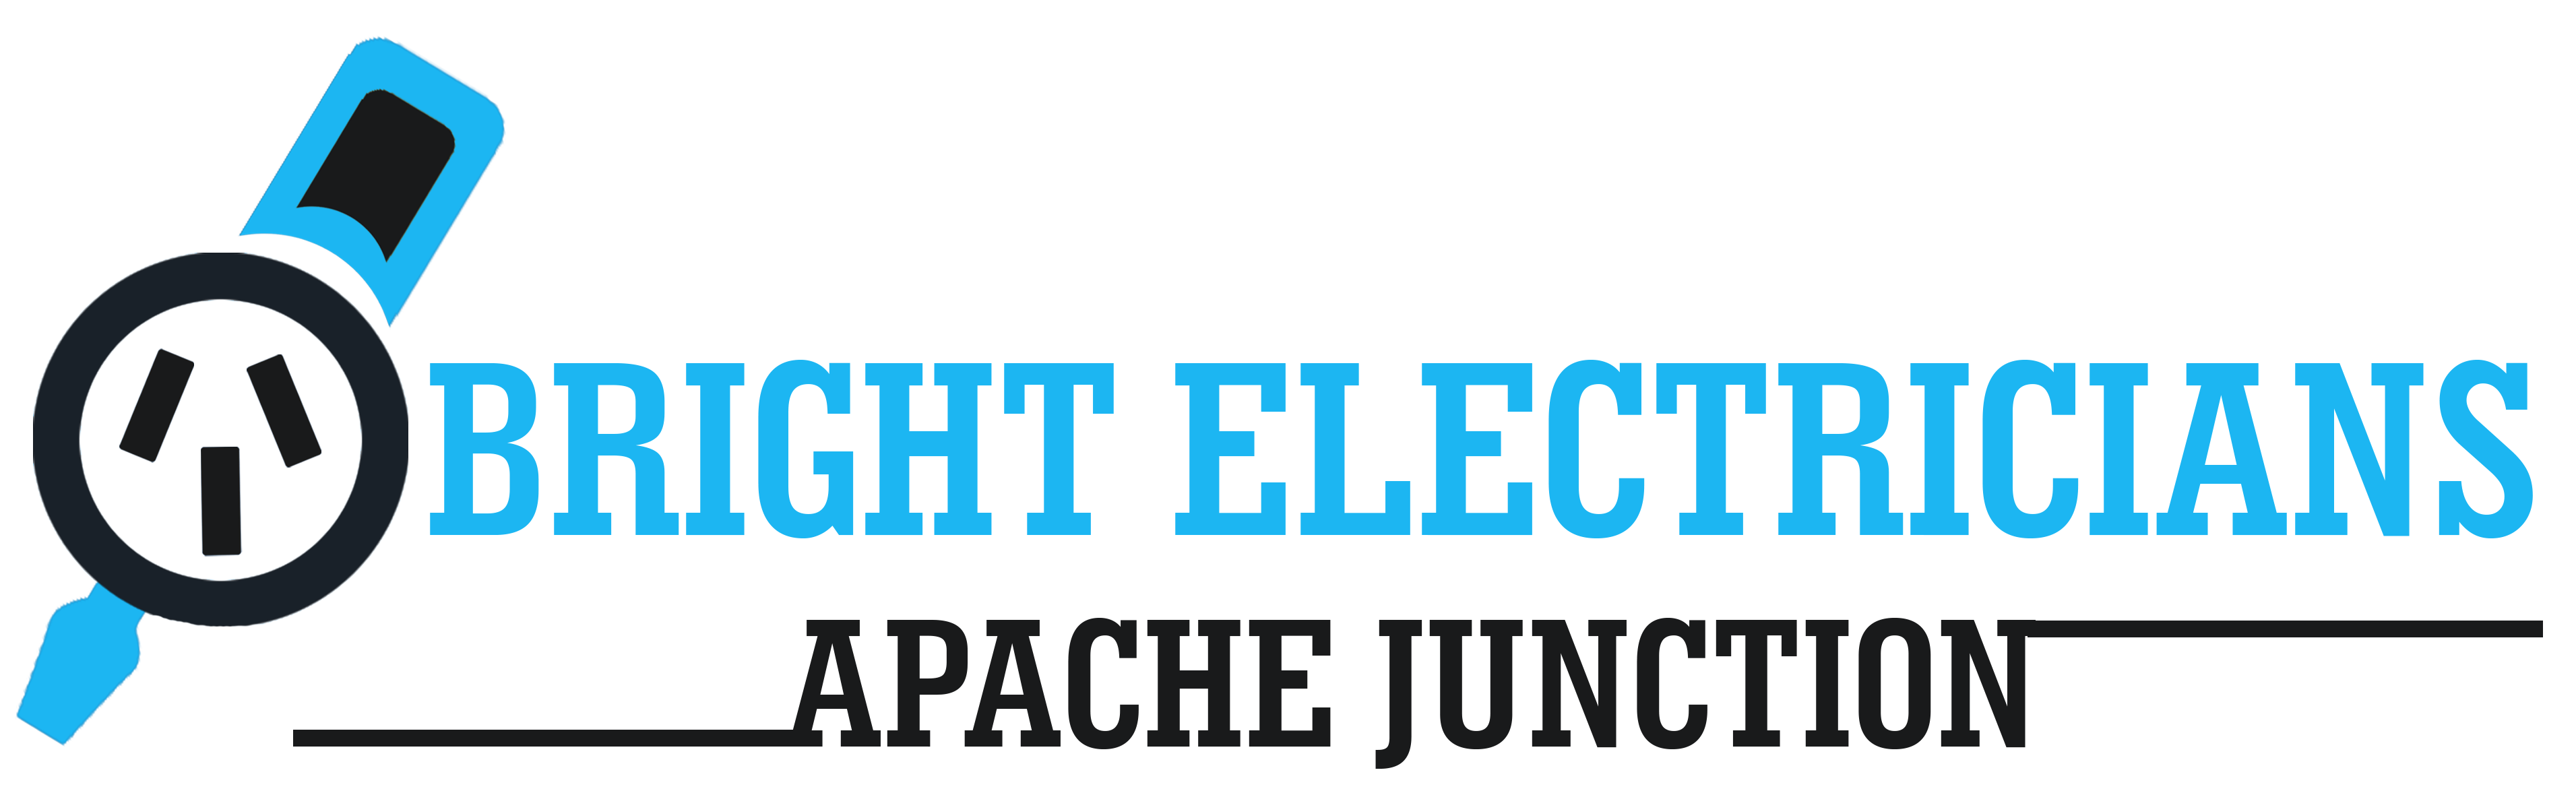 Bright Electricians Apache Junction S Fully Licensed Electricians Arrive Prepared To Diagnose Repair All Types Of Electrical Problems Quickly Safely And To Y